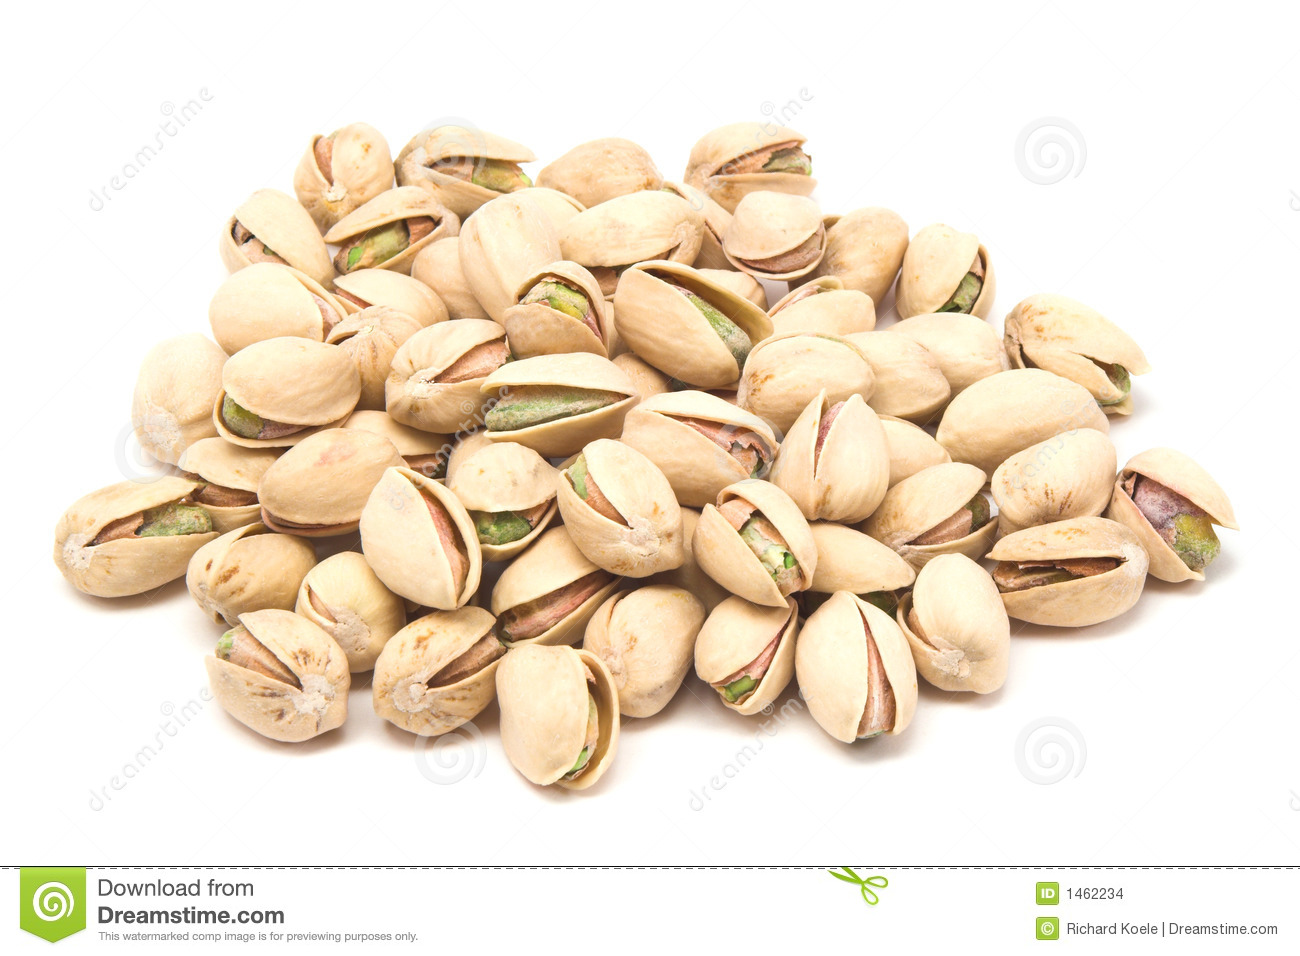 how to eat pistachio nuts